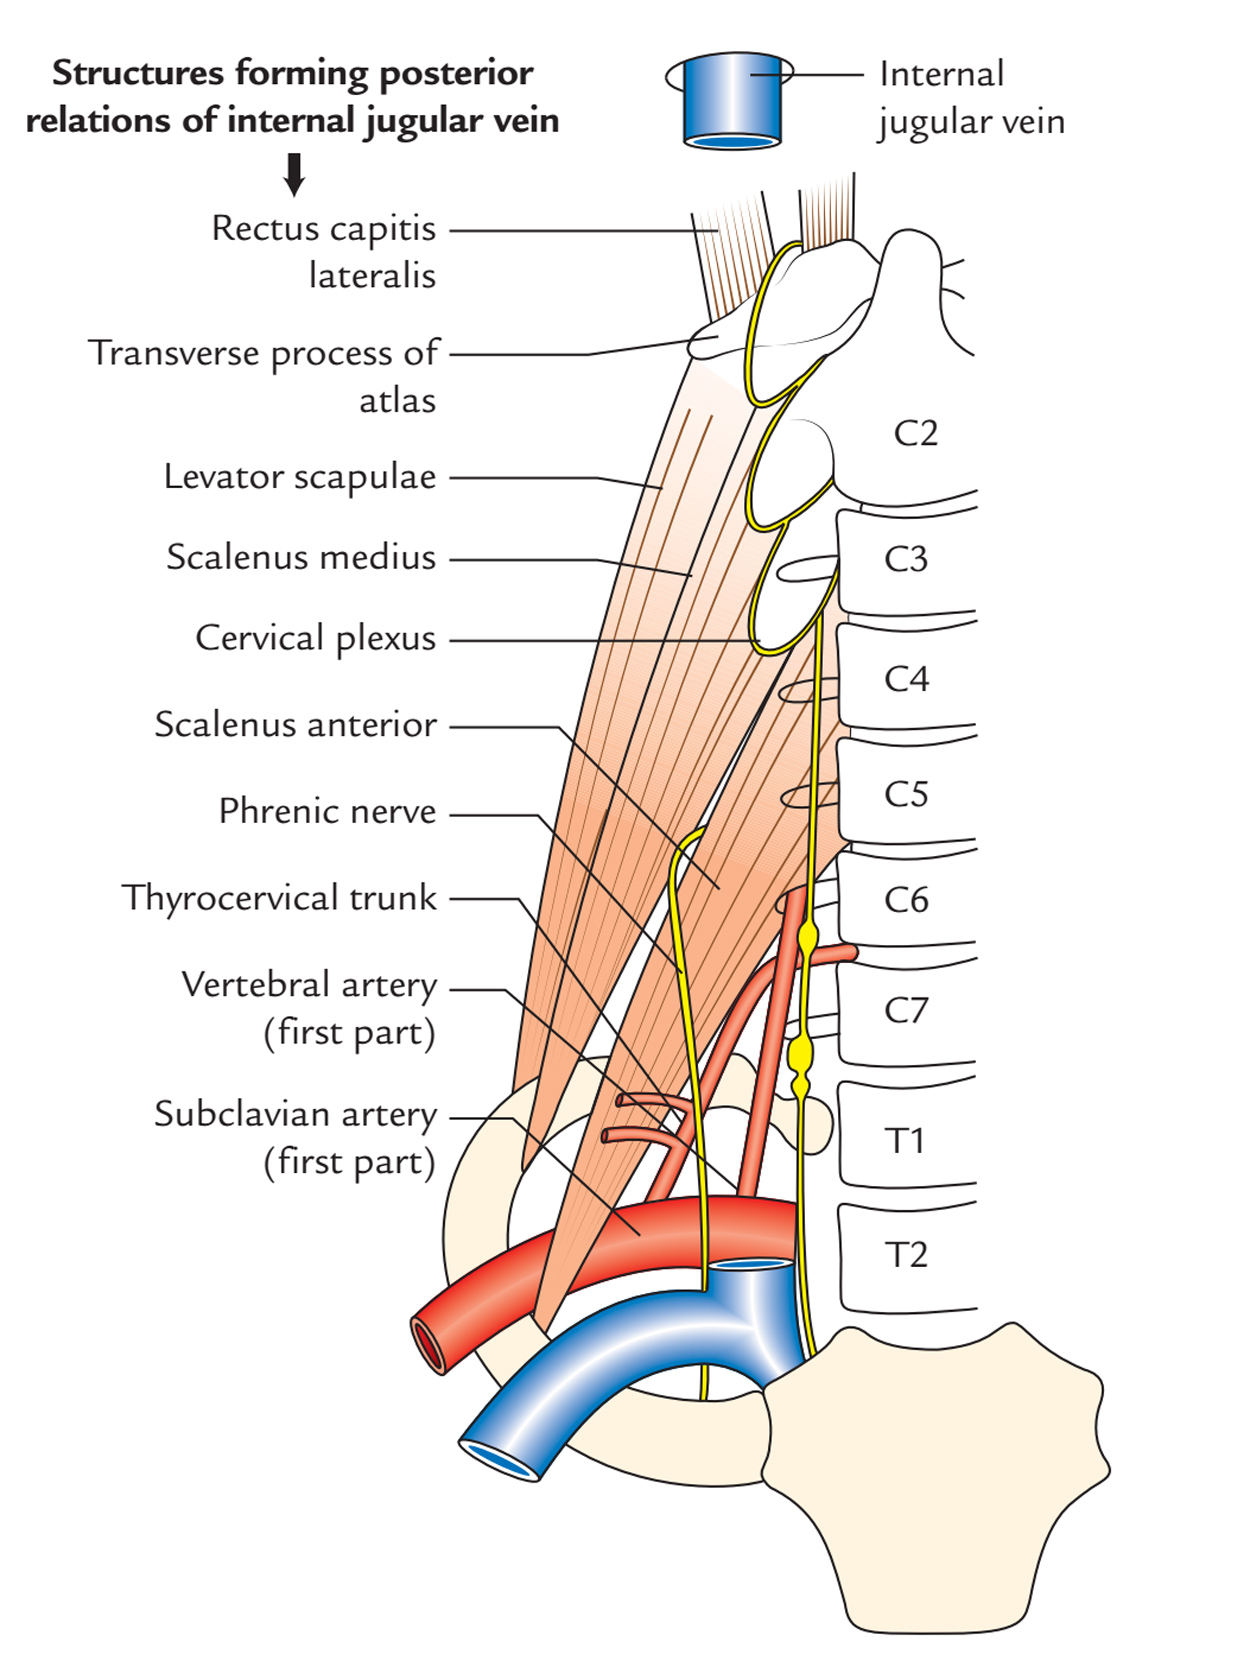 Internal Jugular Vein: Connections